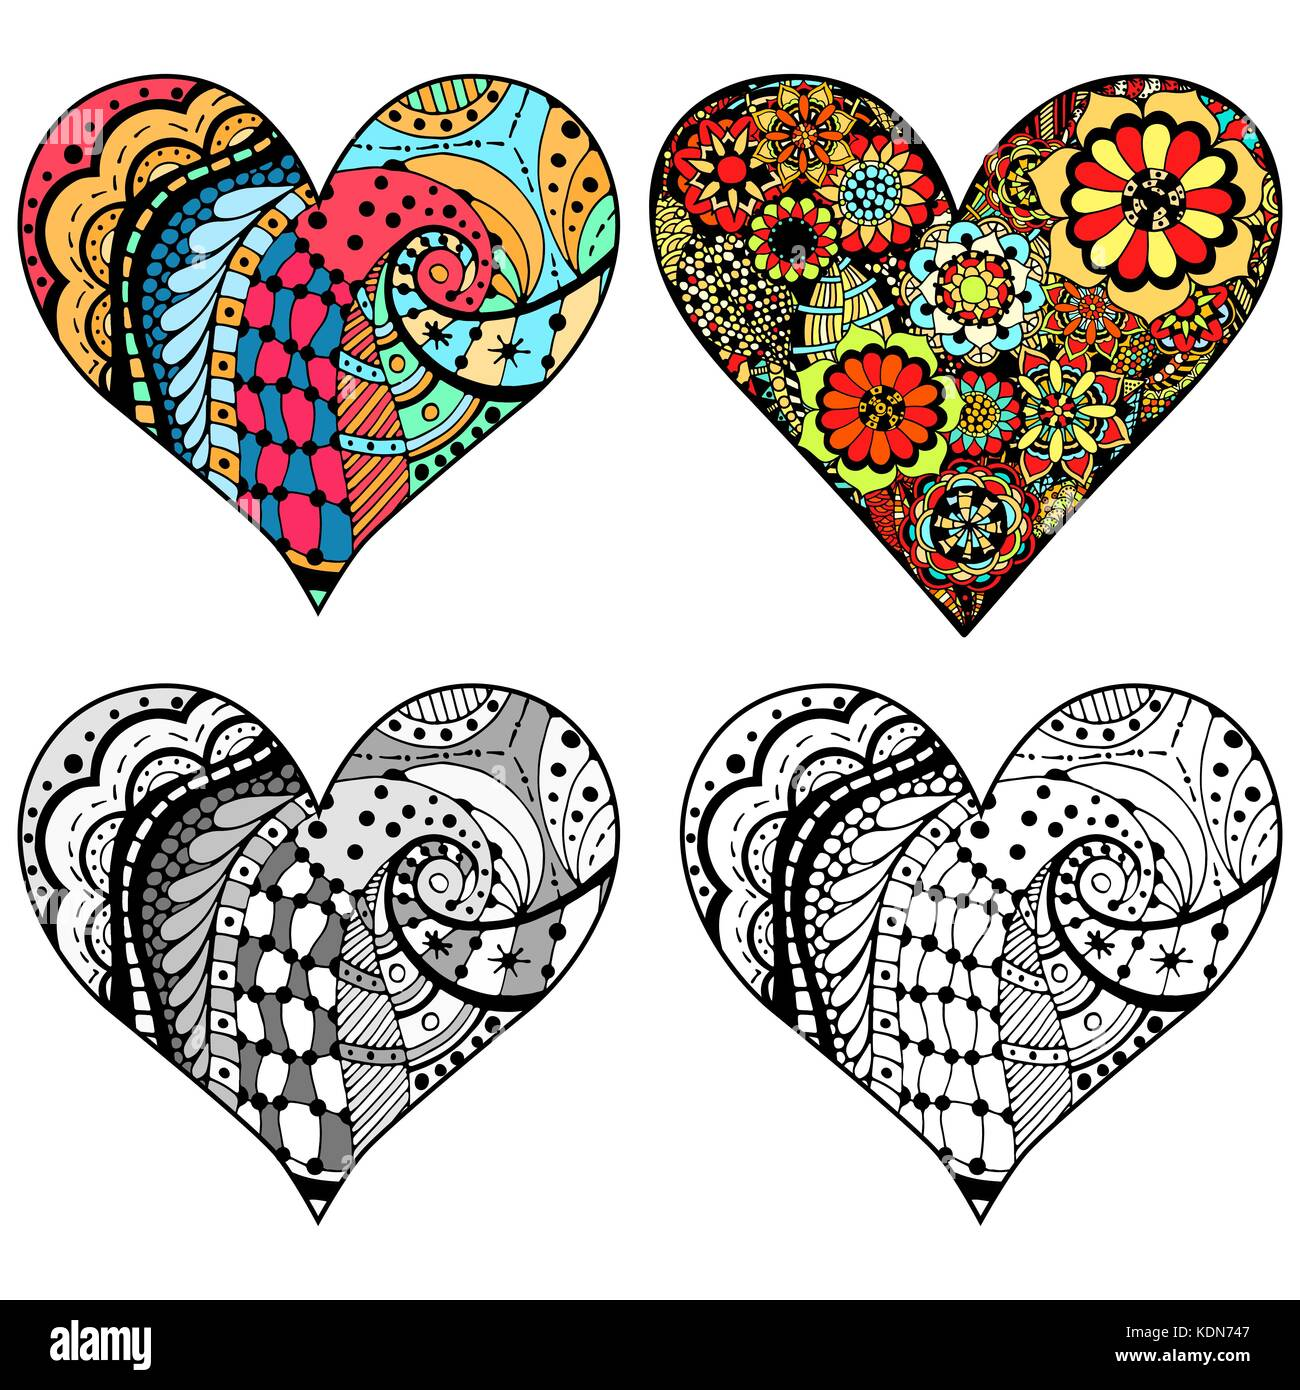 Heart zentangle coloring page | Mandala coloring pages, Coloring ... | 1390x1300